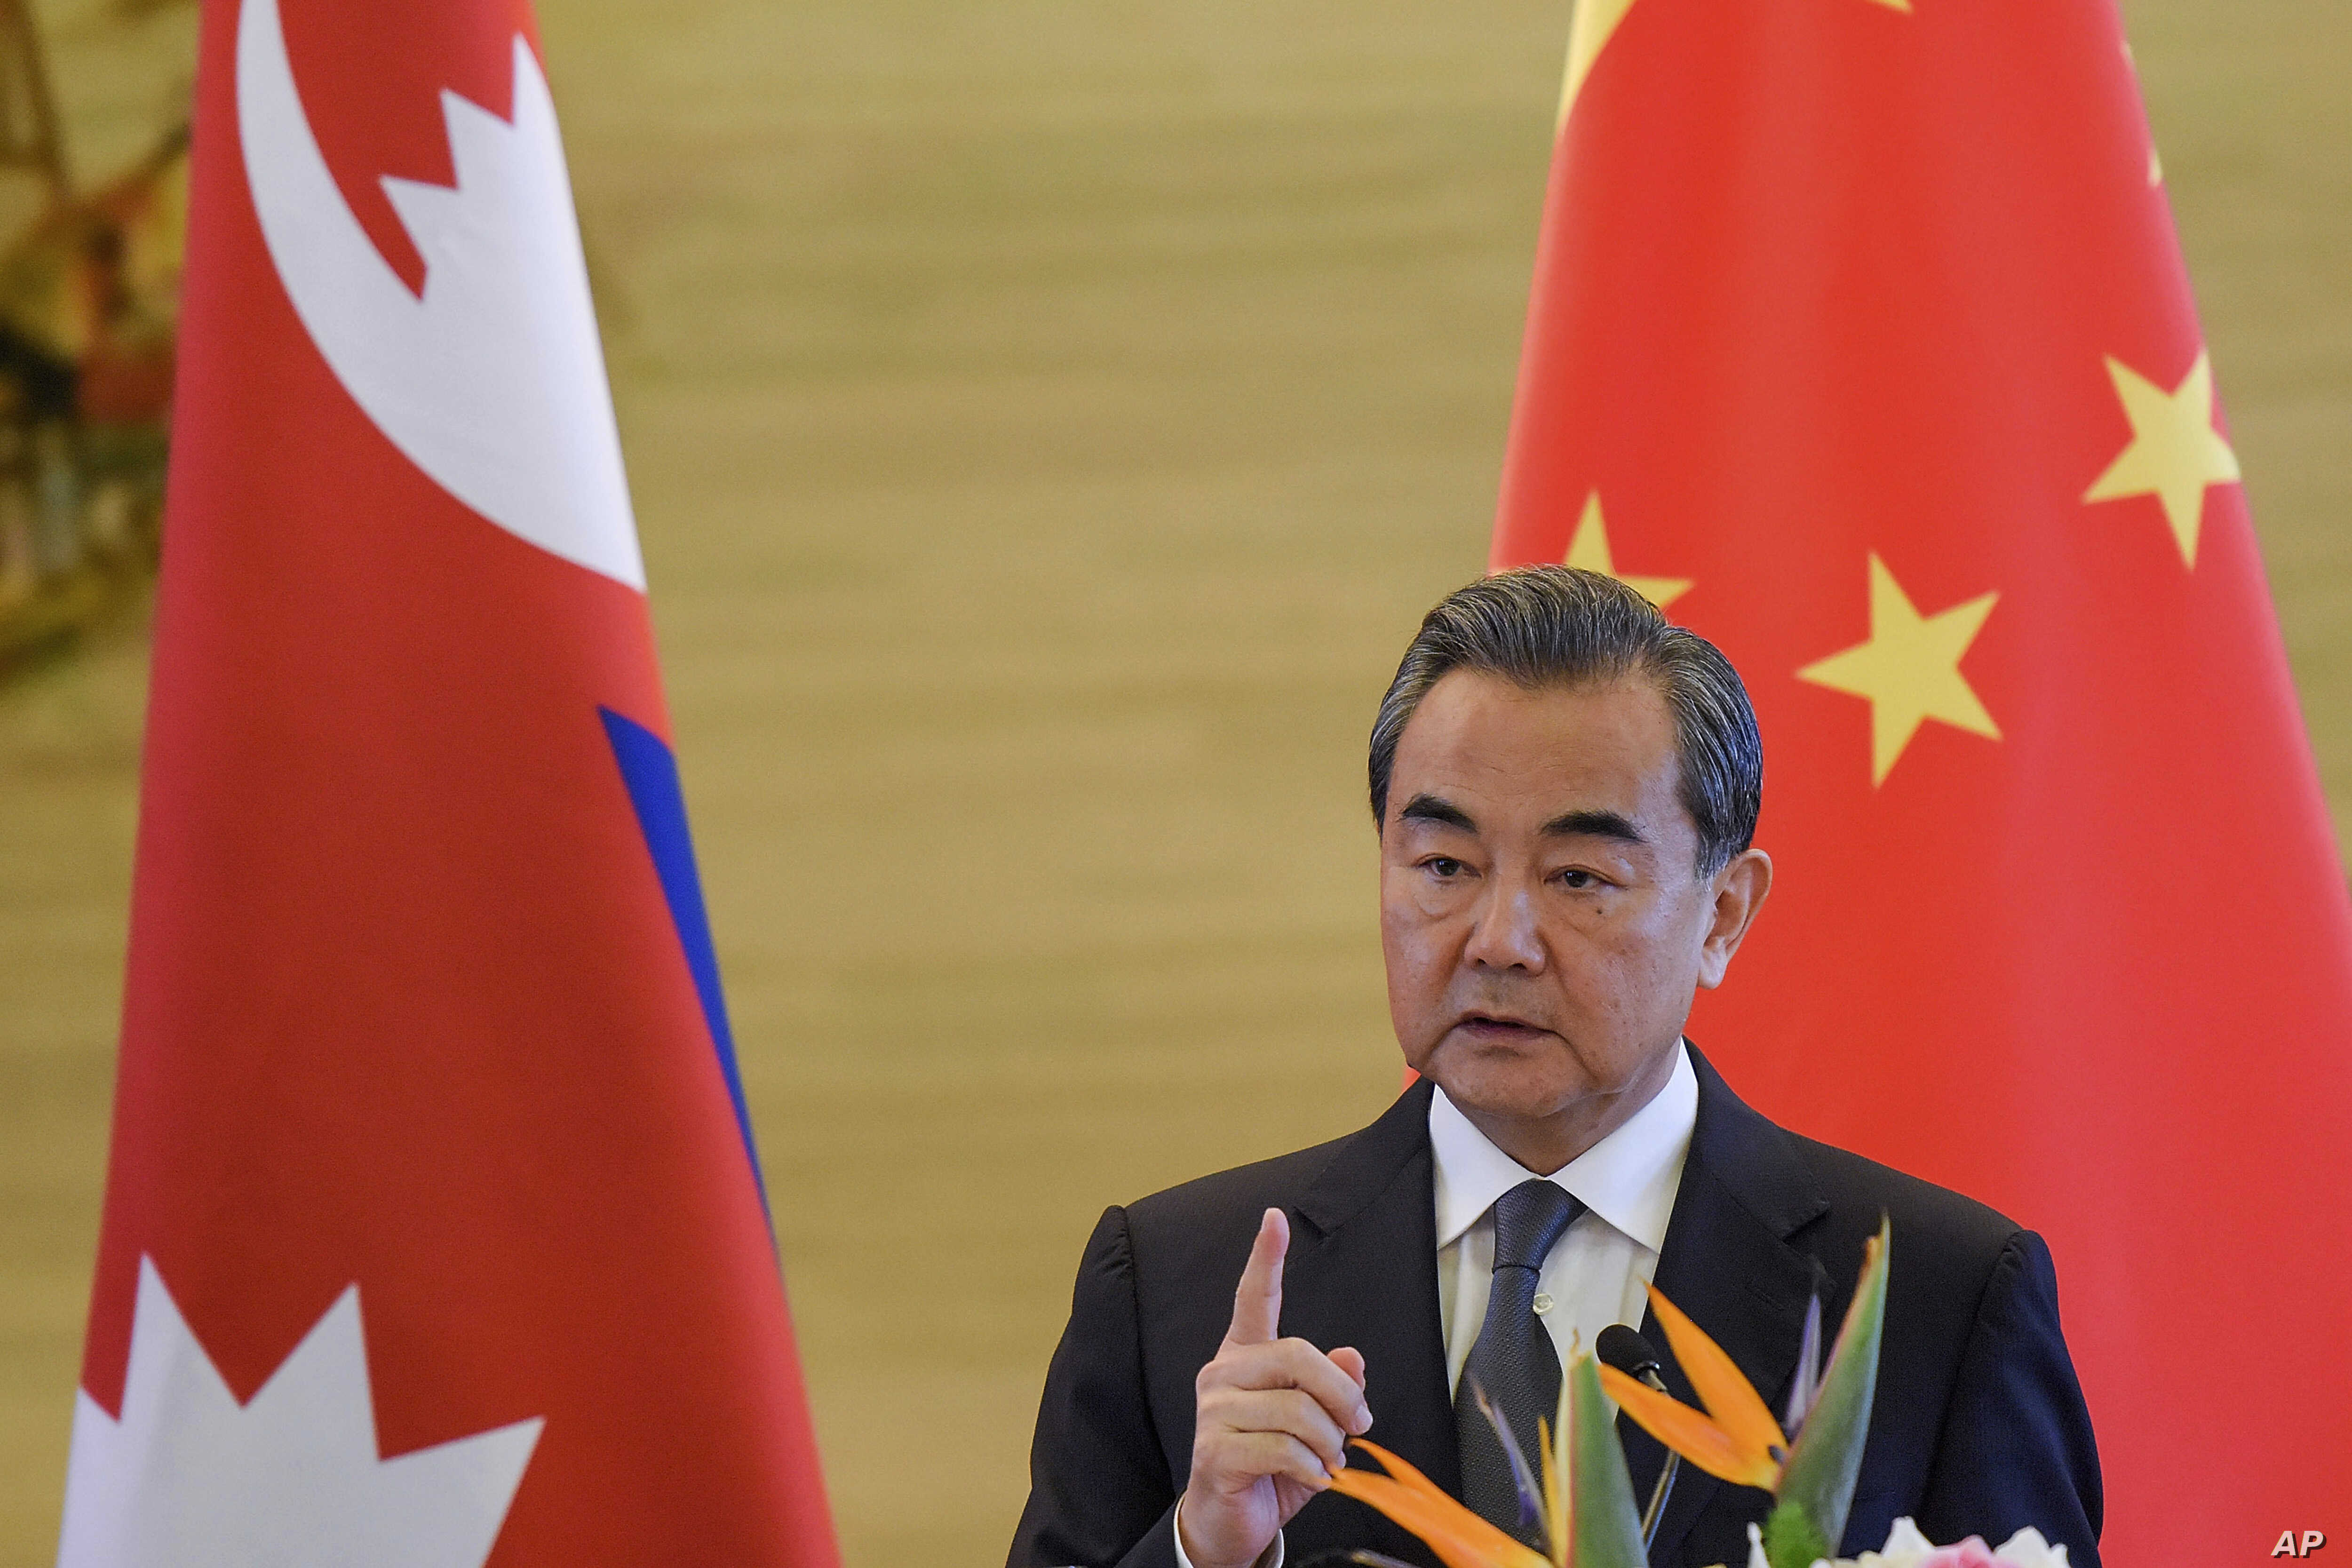 China's Foreign Minister Wang Yi speaks after a meeting with Nepal's Deputy Prime Minister Krishna Bahadur Mahara, Sept. 7, 2017, in Beijing.